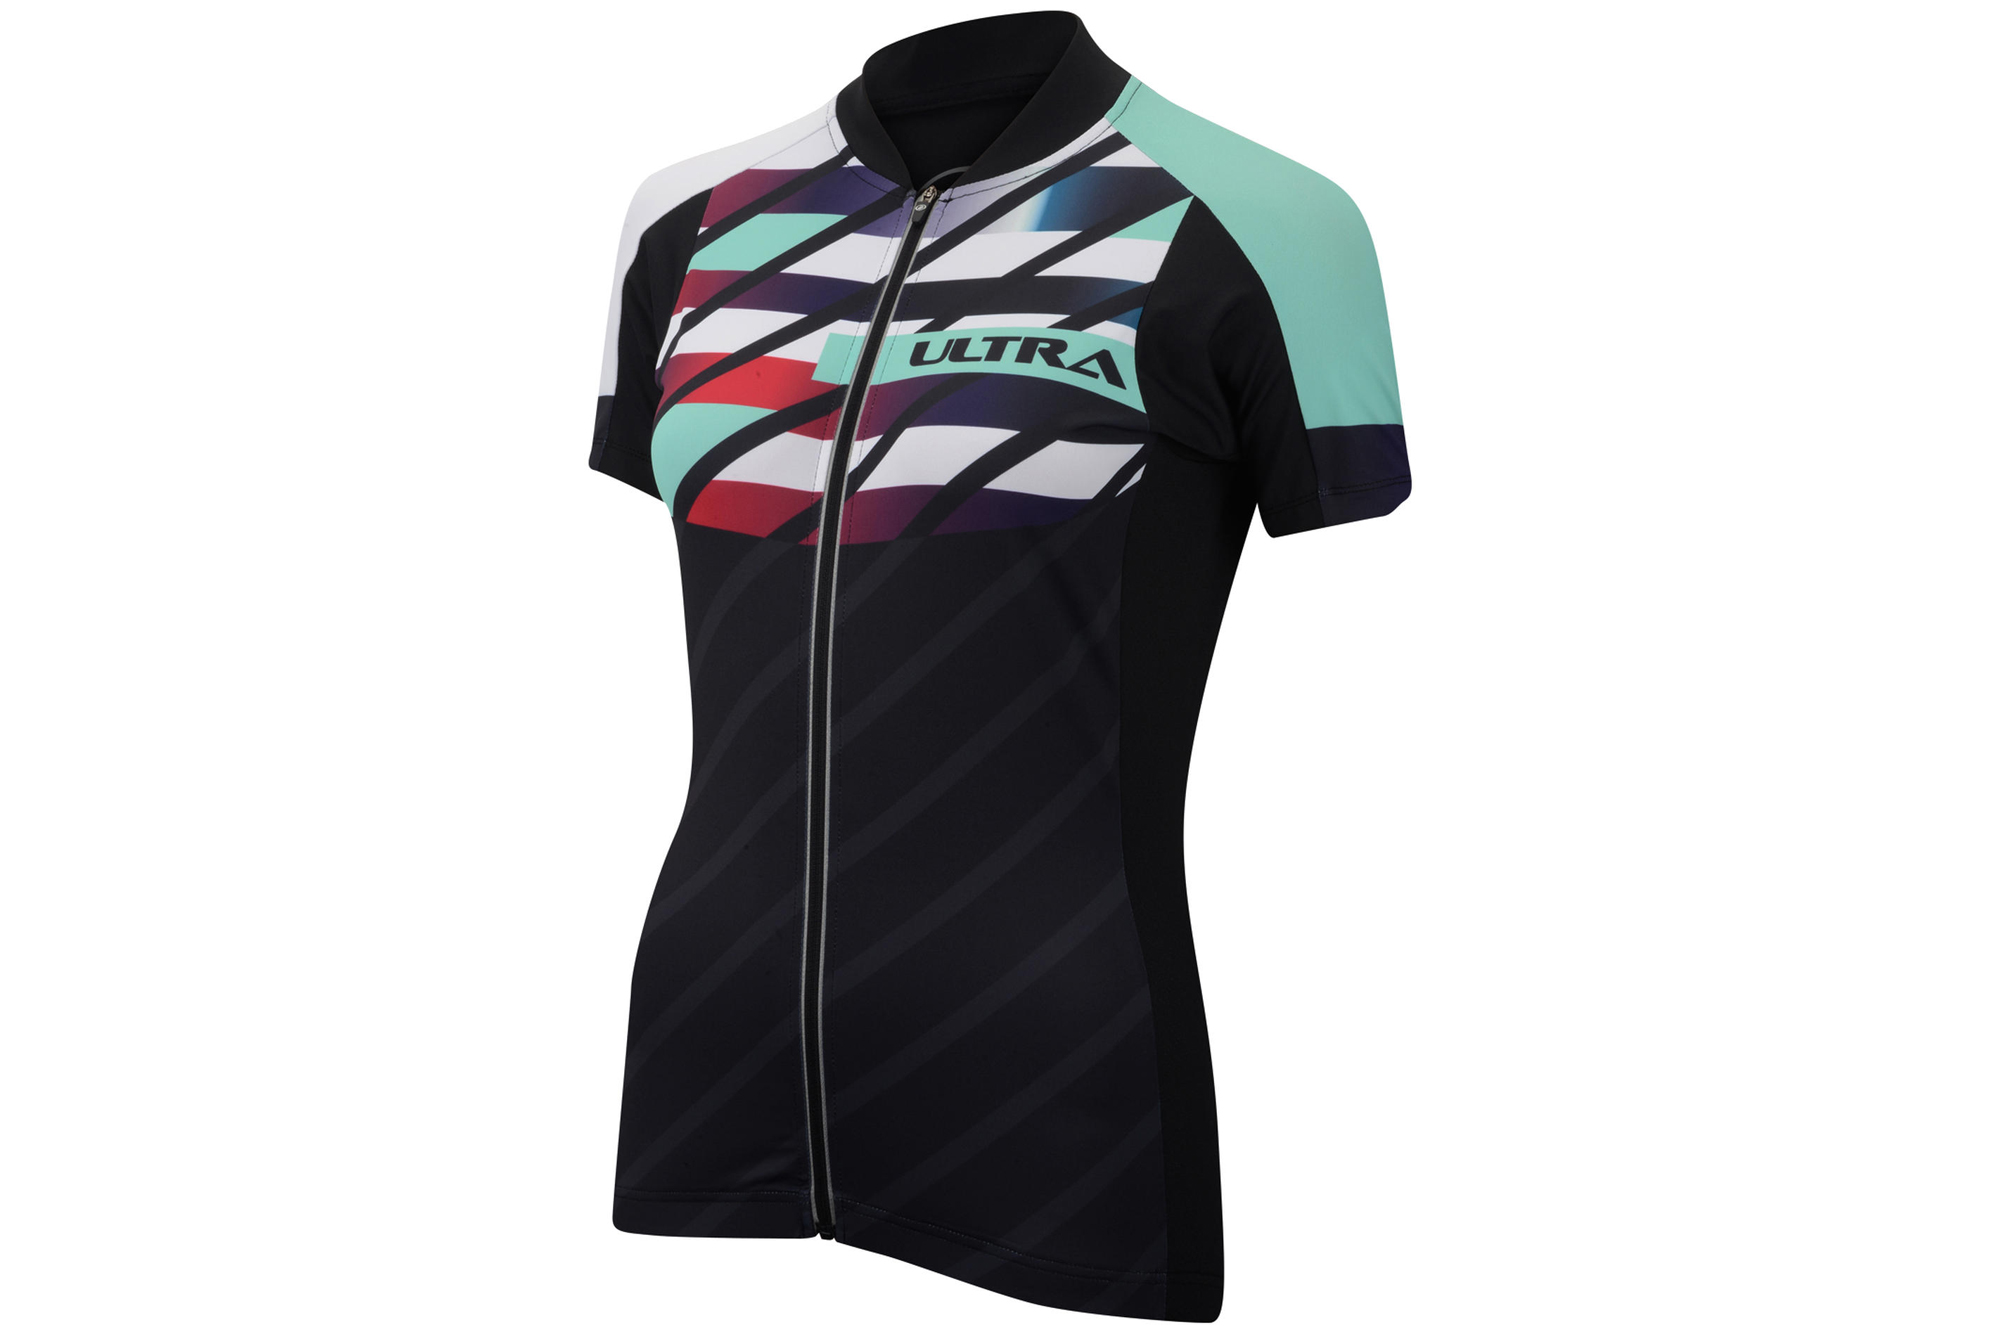 c44bc507c Build the Perfect Kit  Best Women s Road Cycling Gear